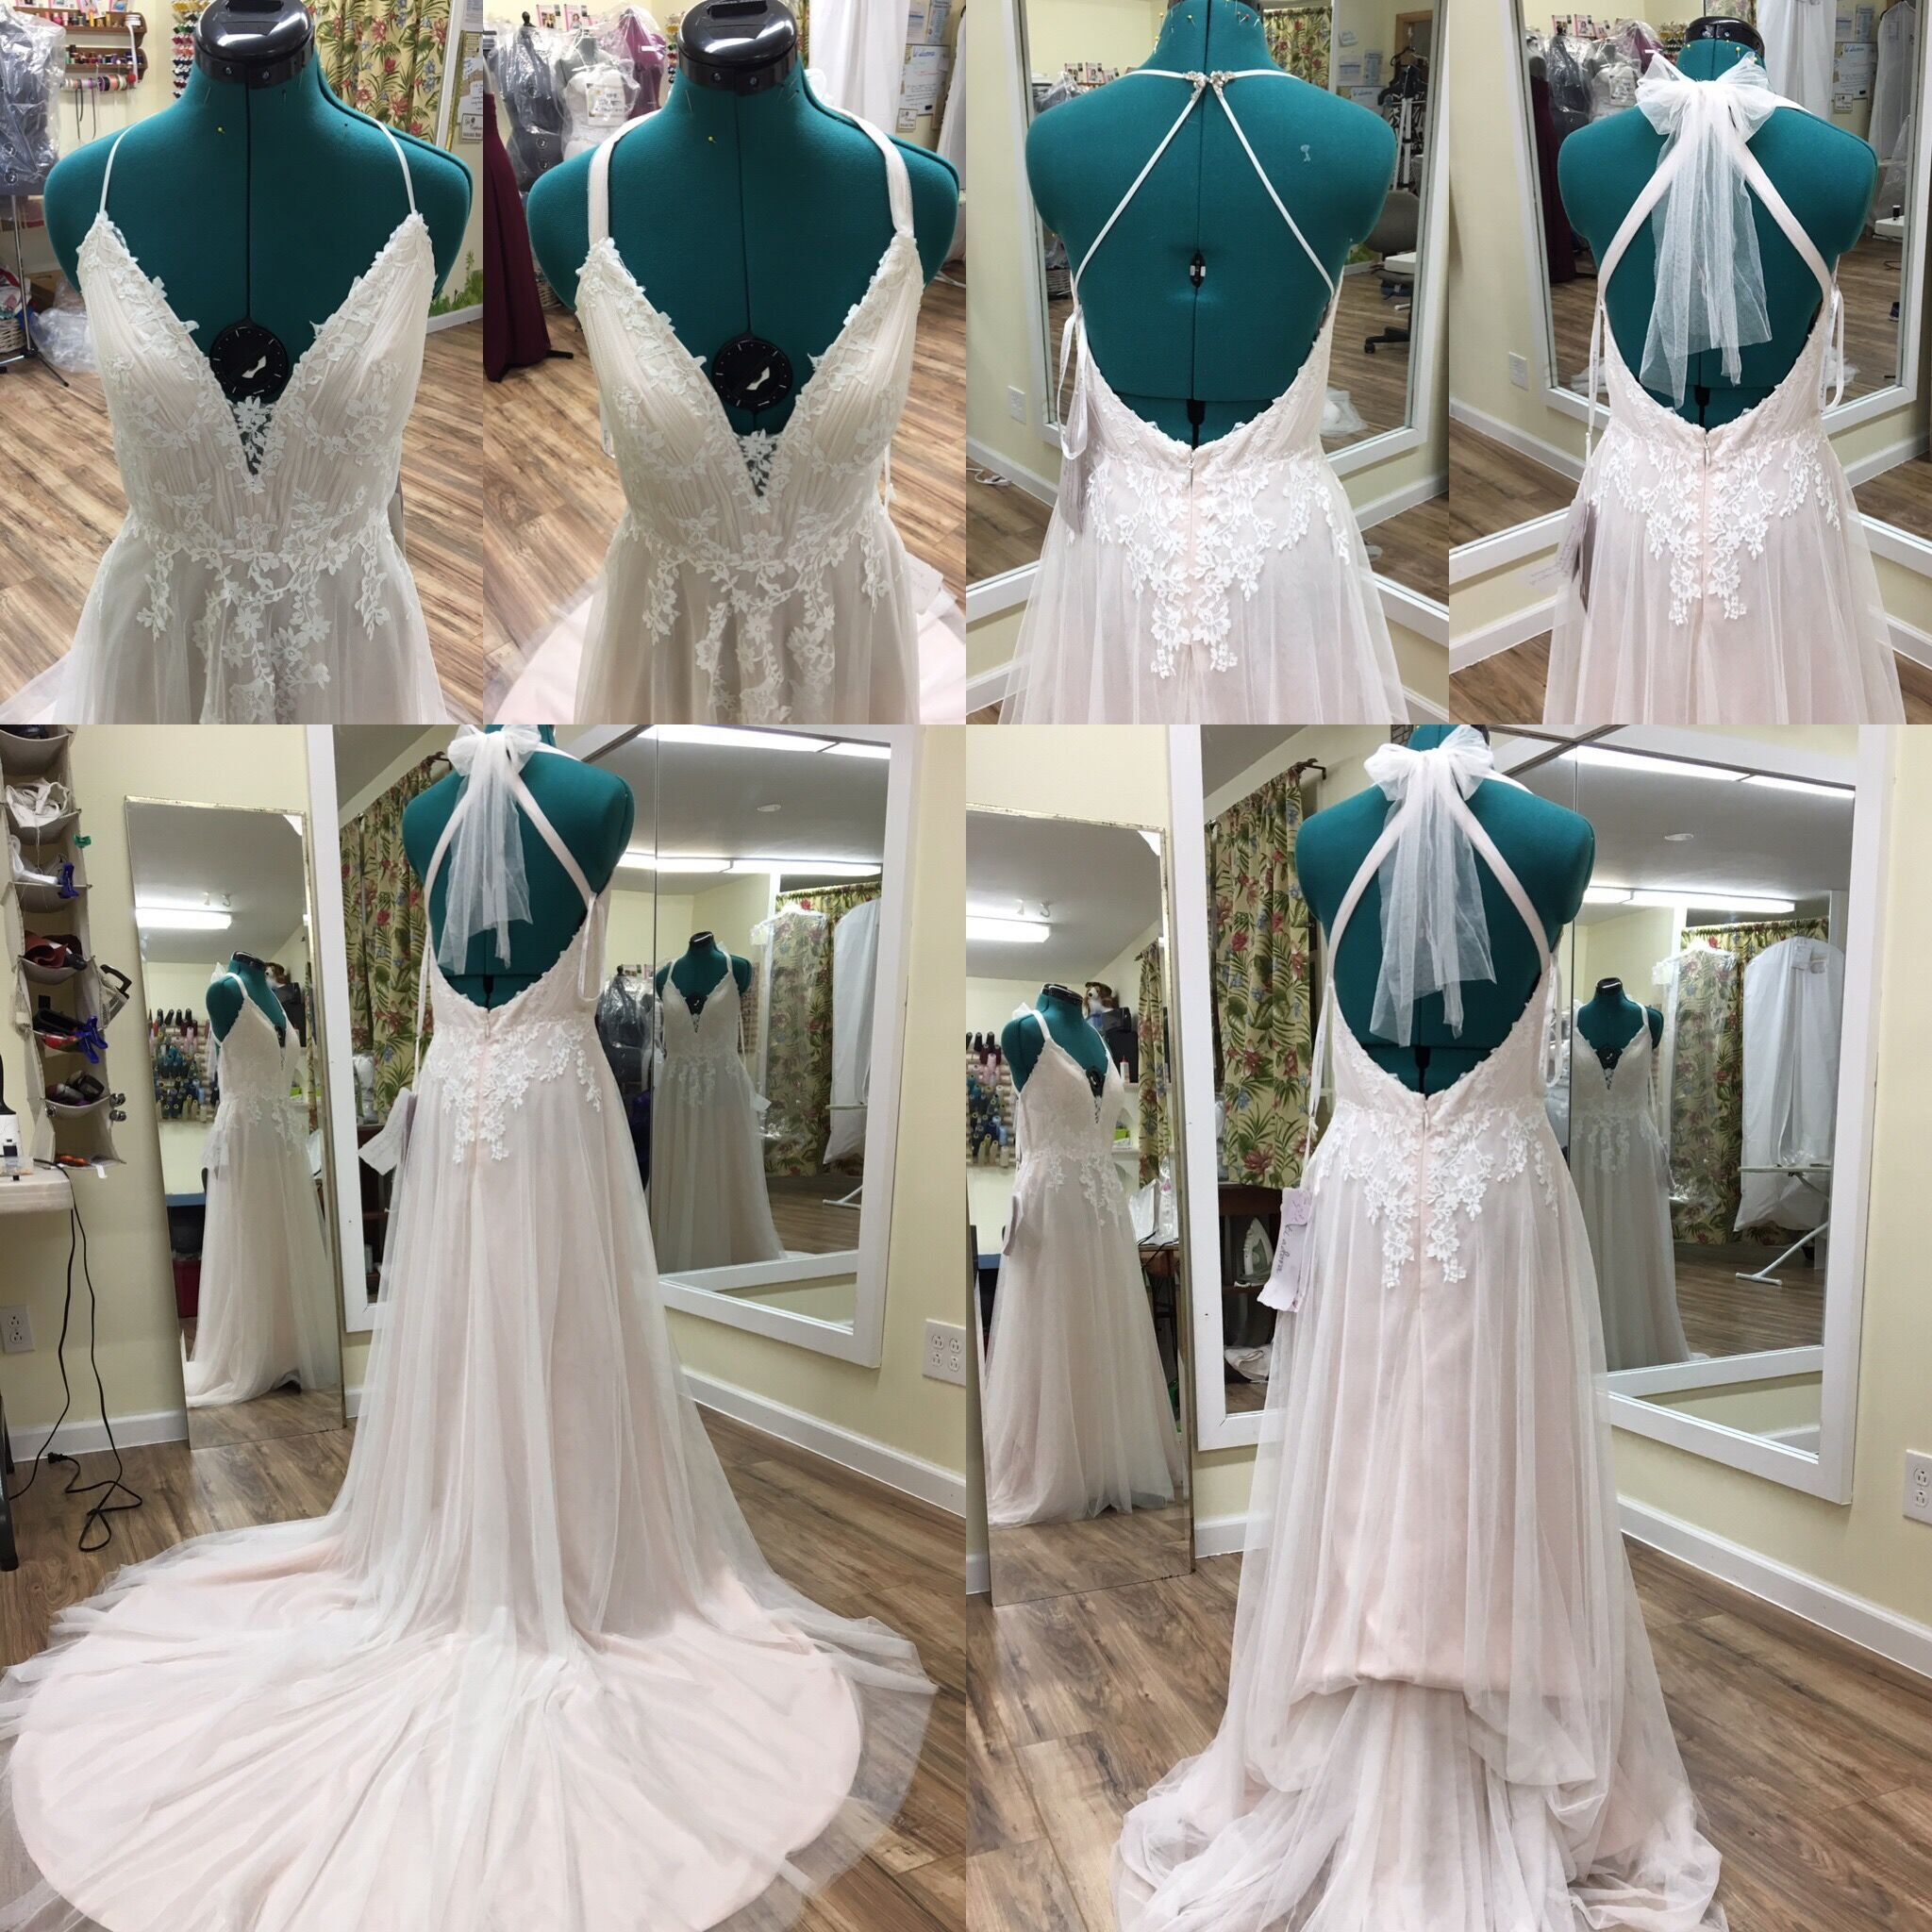 Fashion Forest Beauty Salon: The Joy Of Sewing & Embroidery Service